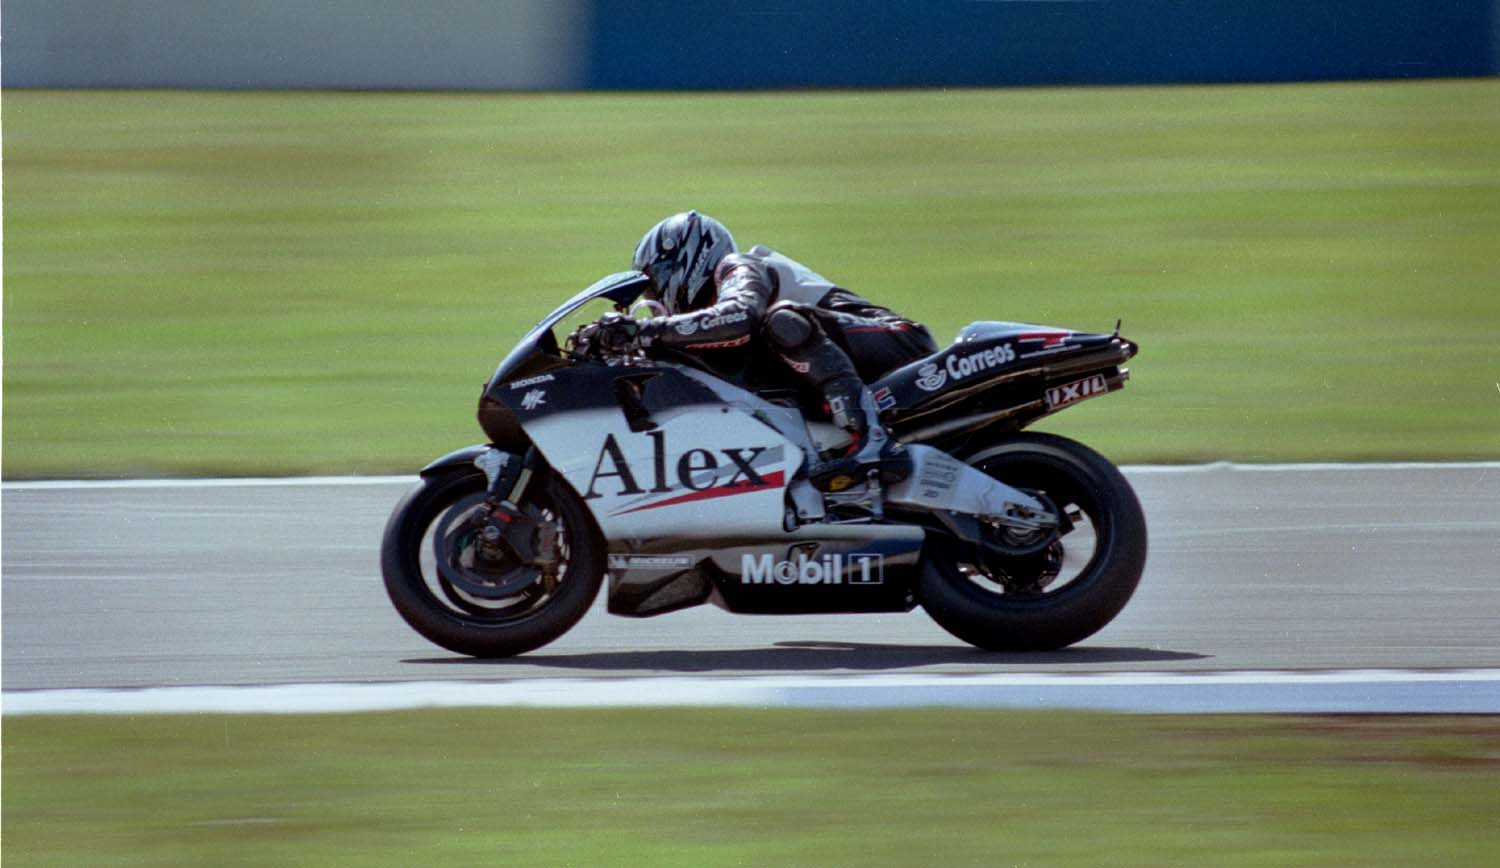 Alex Barros on a Honda NSR 500